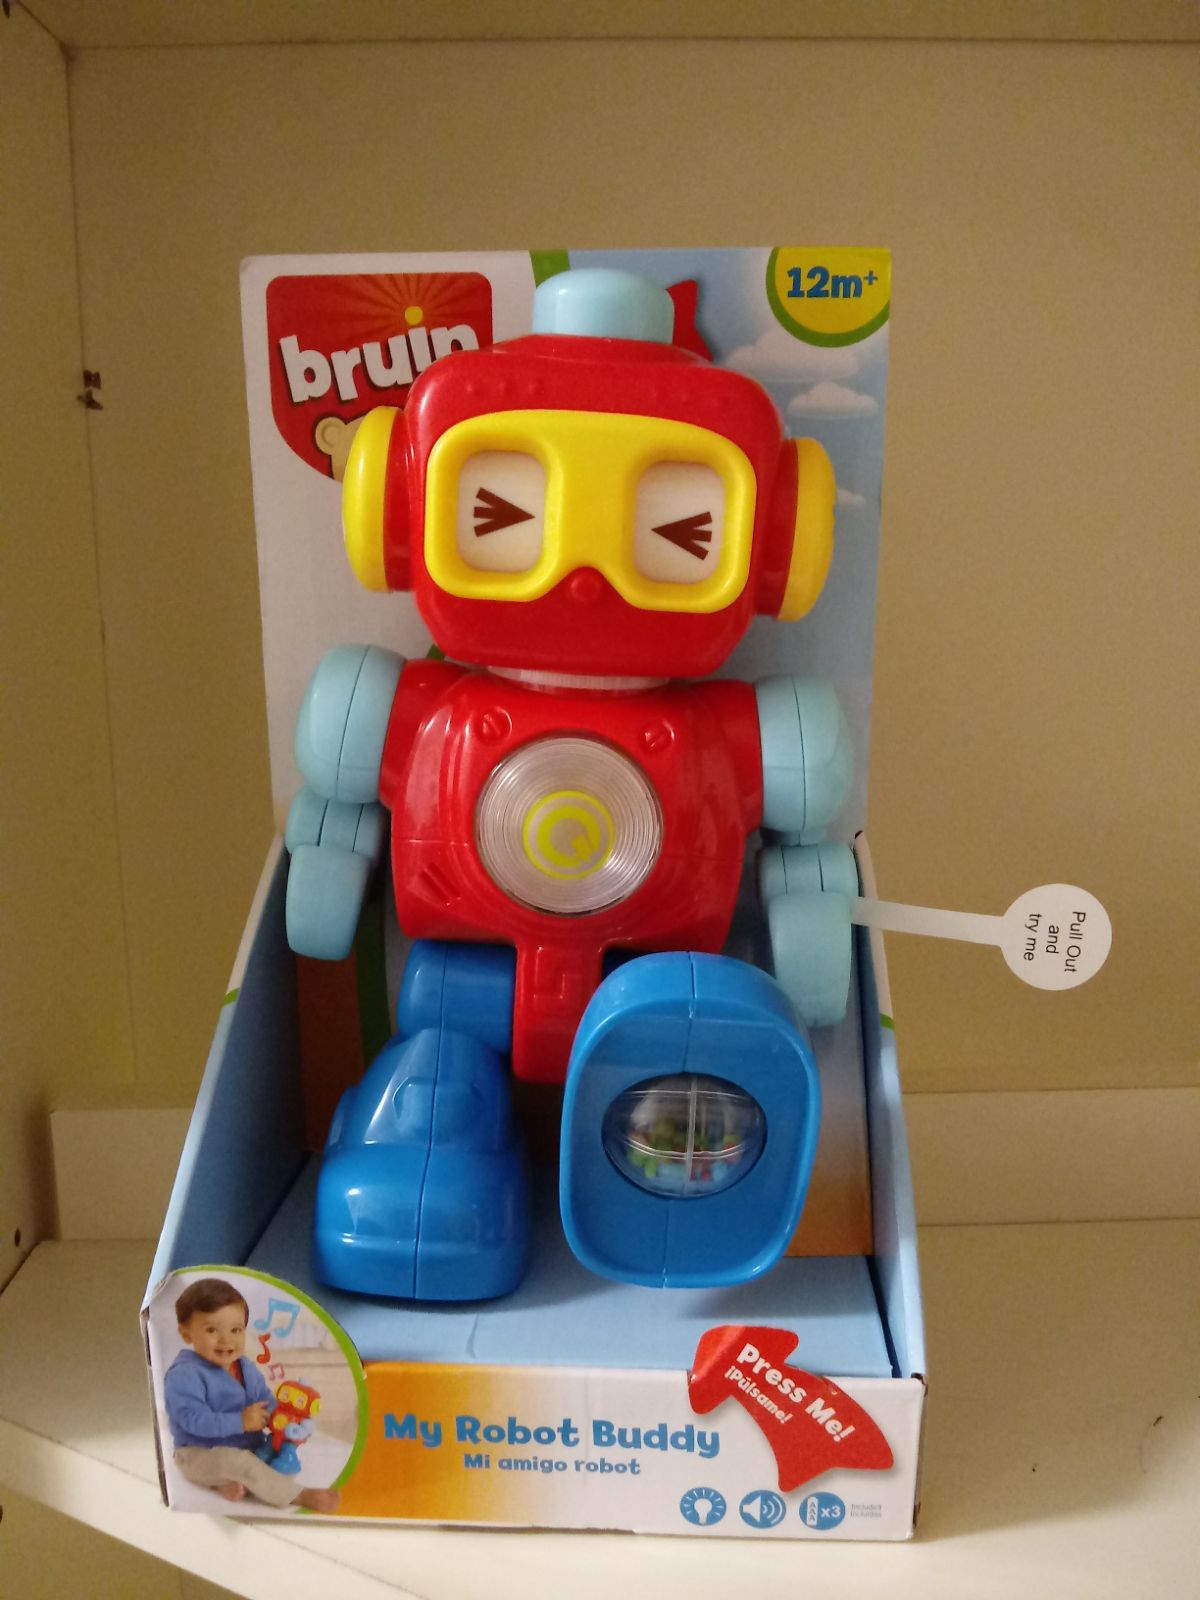 Burin my toy robot - toy - kids - play -